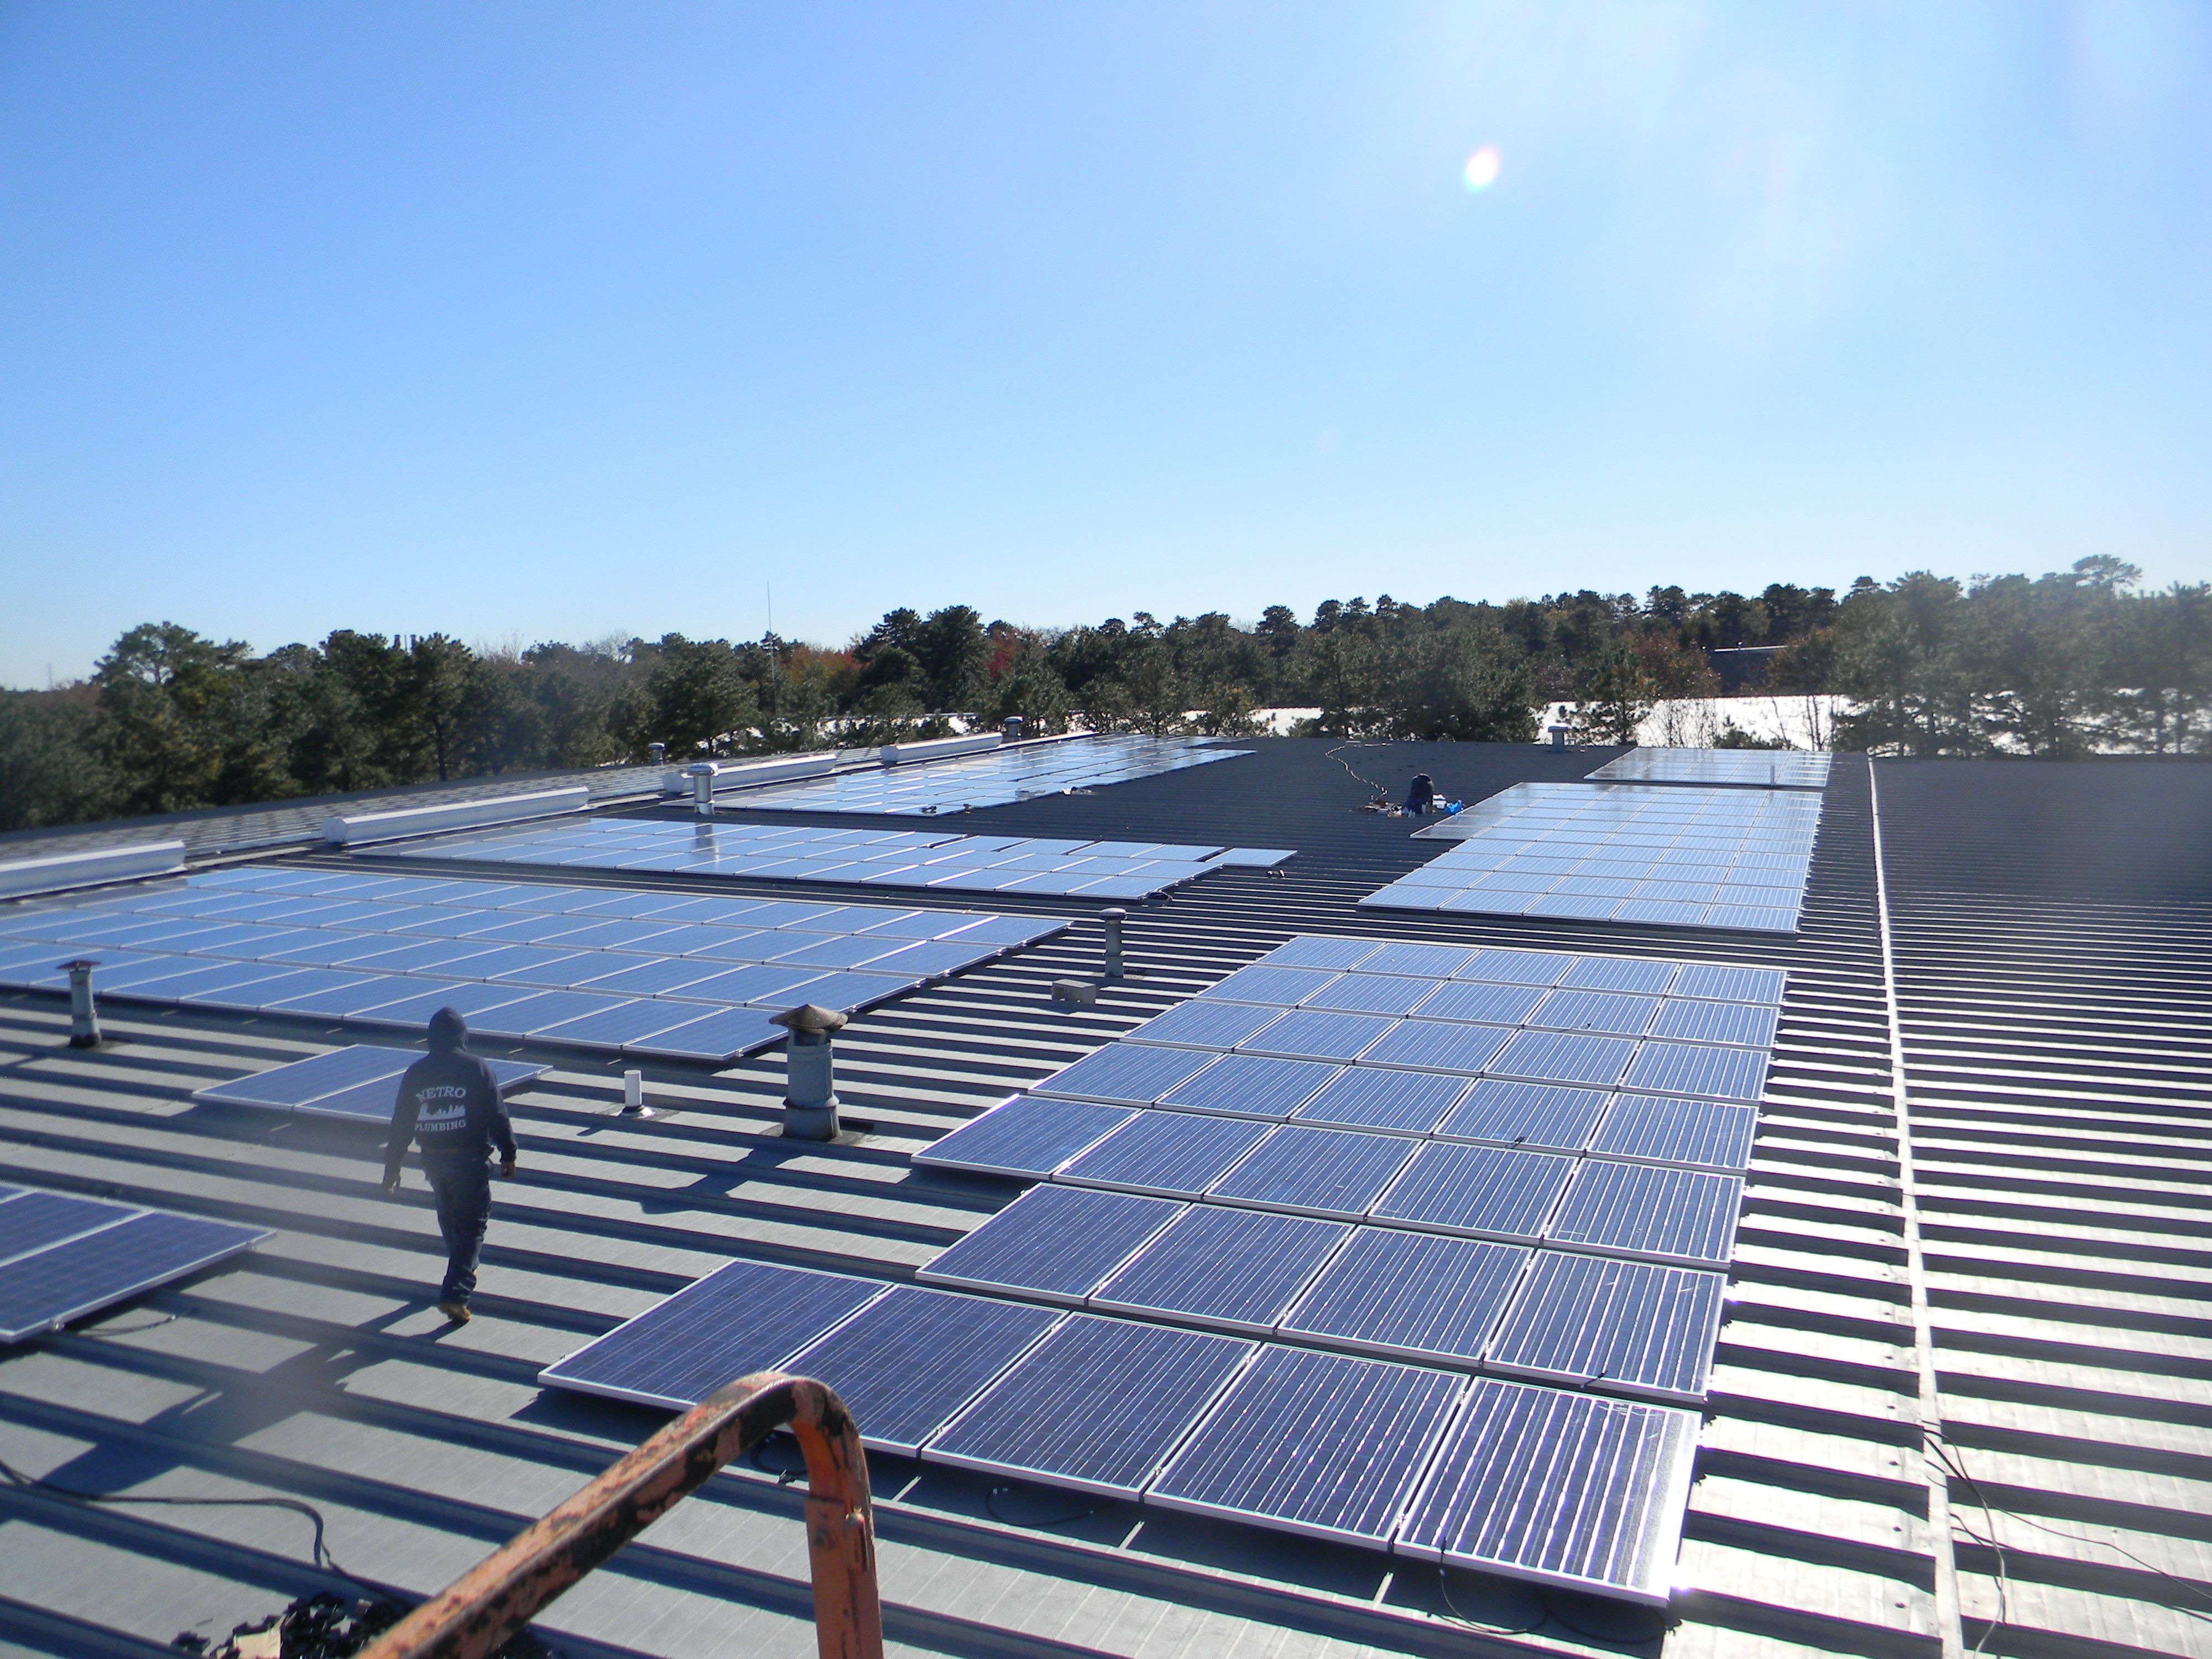 Solar Power Is A Clean As Well As Affordable Method To Generate Renewable Electricity Learn How One Can Switch To So With Images Buy Solar Panels Solar Solar Panels